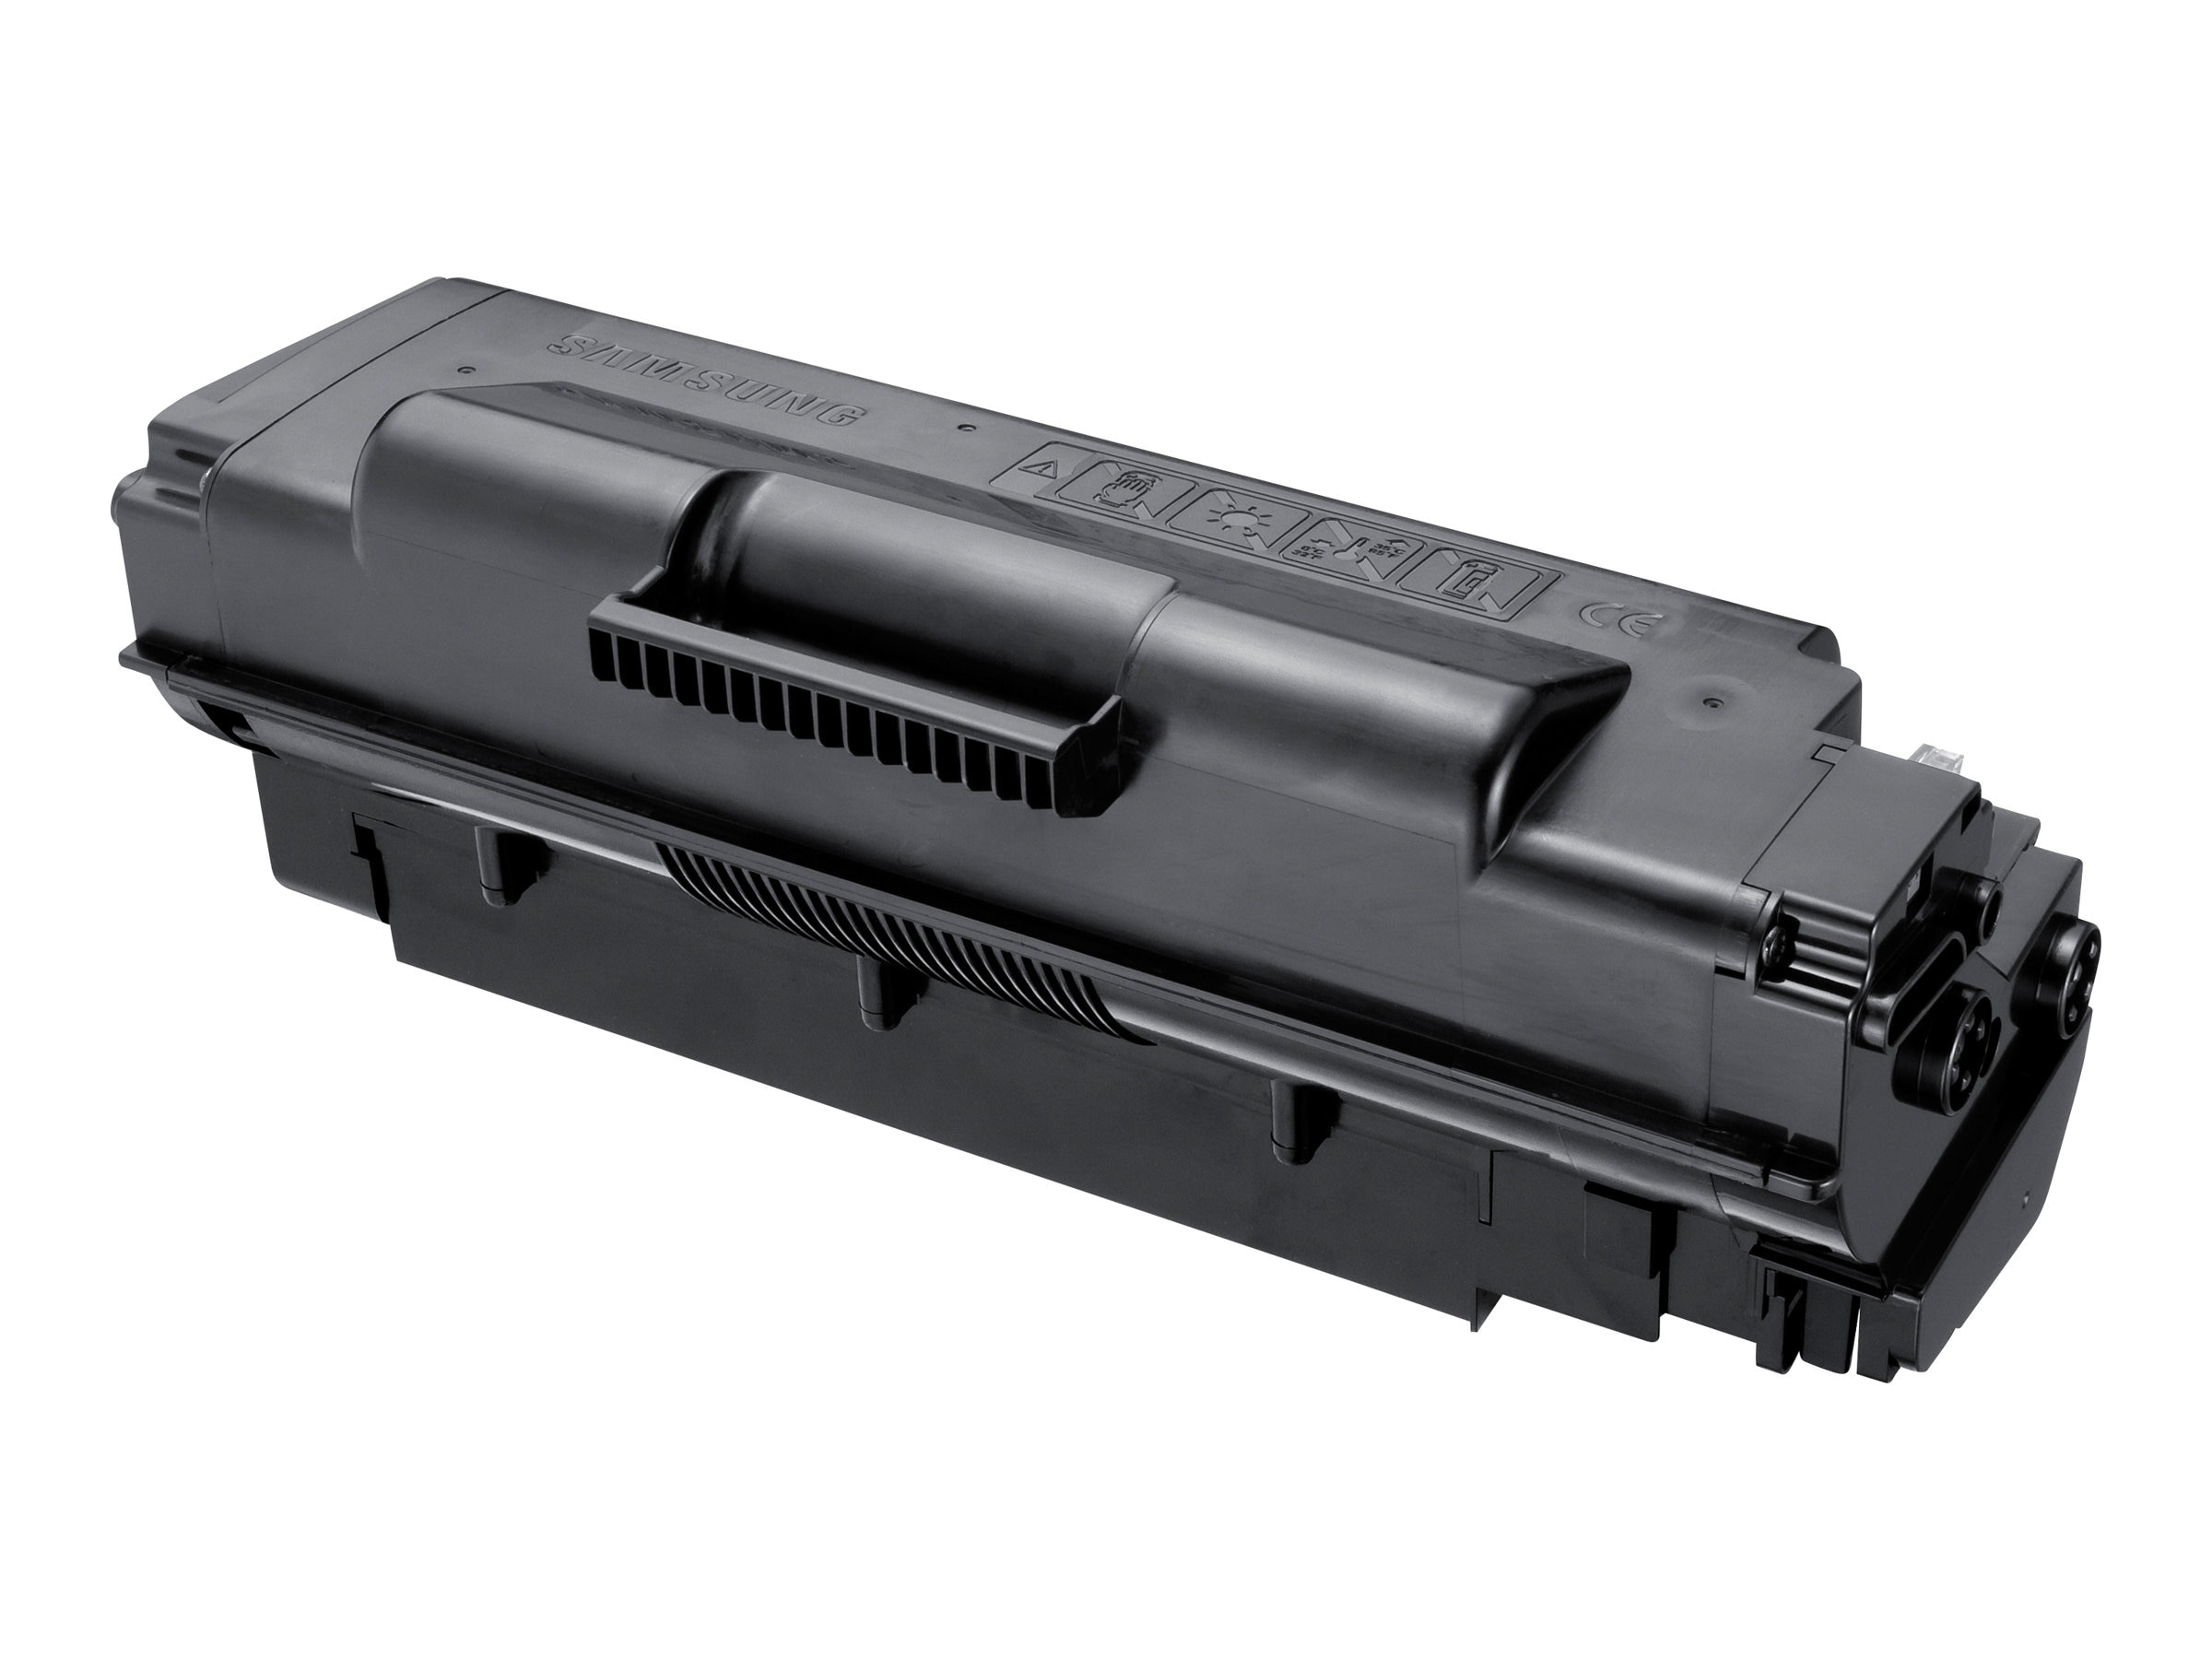 Samsung Black Extra High Yield Toner Cartridge for ML-4512ND, ML-5012ND & ML-5017ND, MLT-D307E, 13070649, Toner and Imaging Components